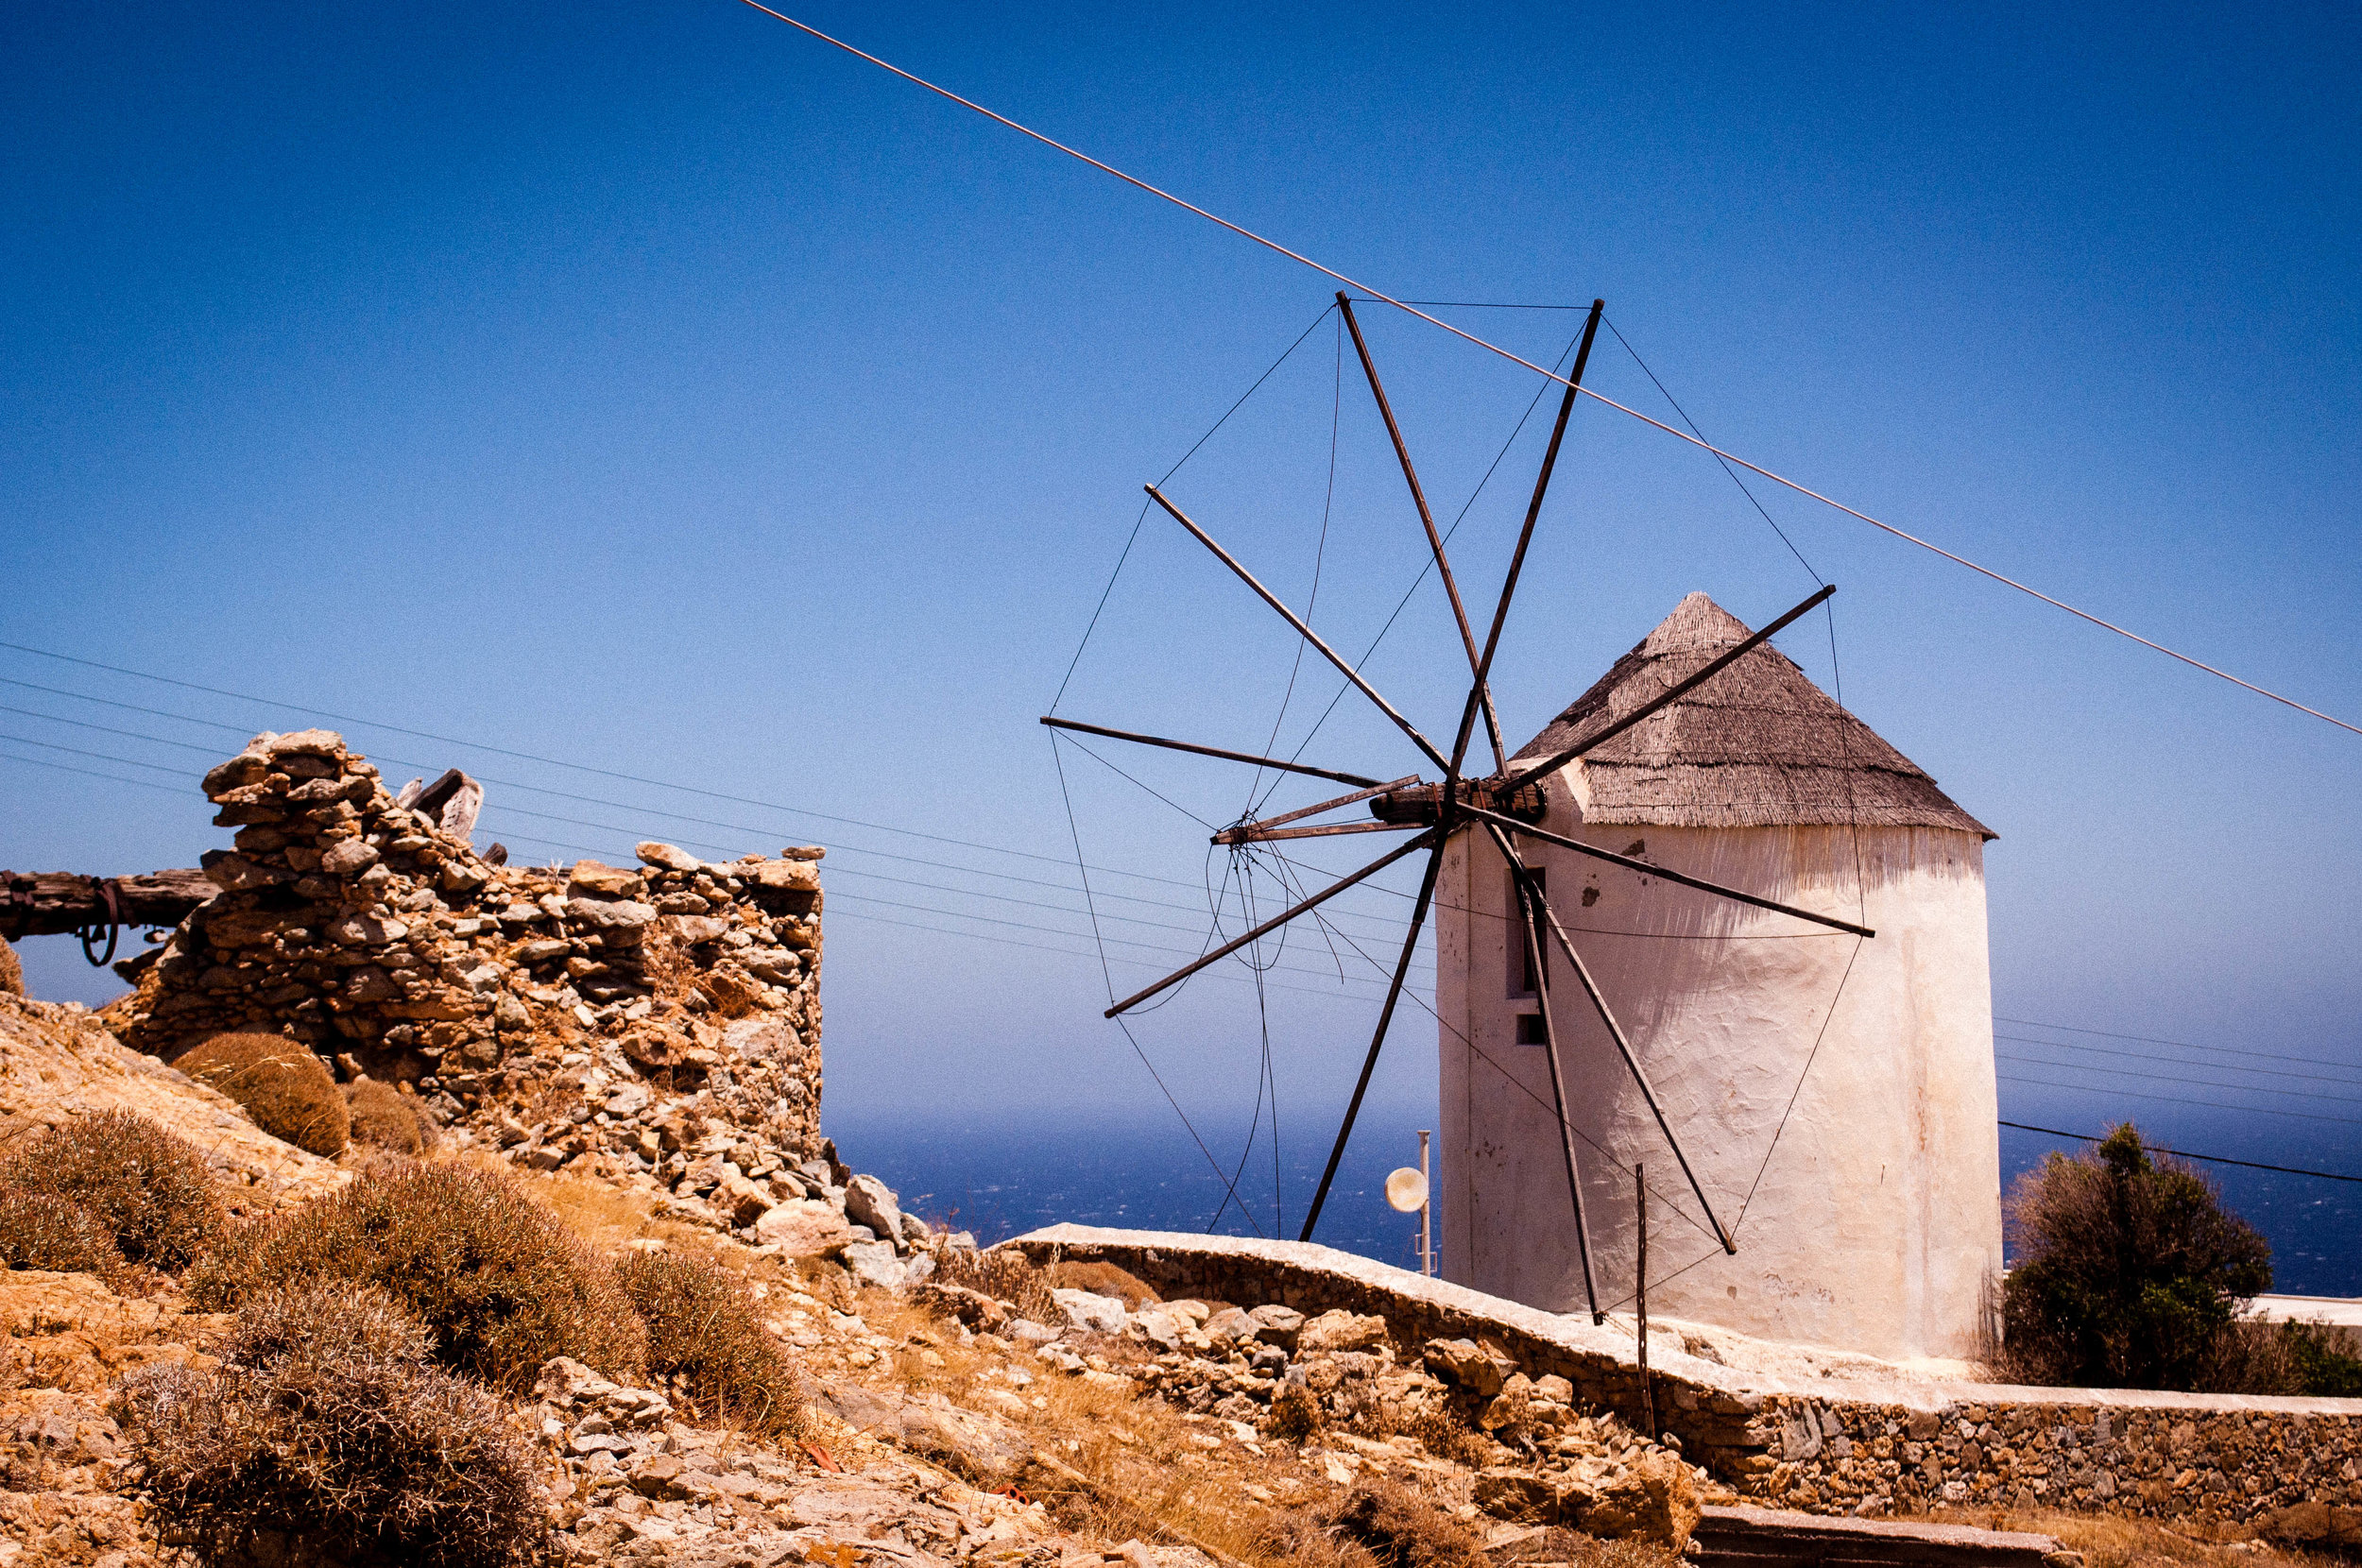 White wind mill of Serifos with a blue sky on the backdrop